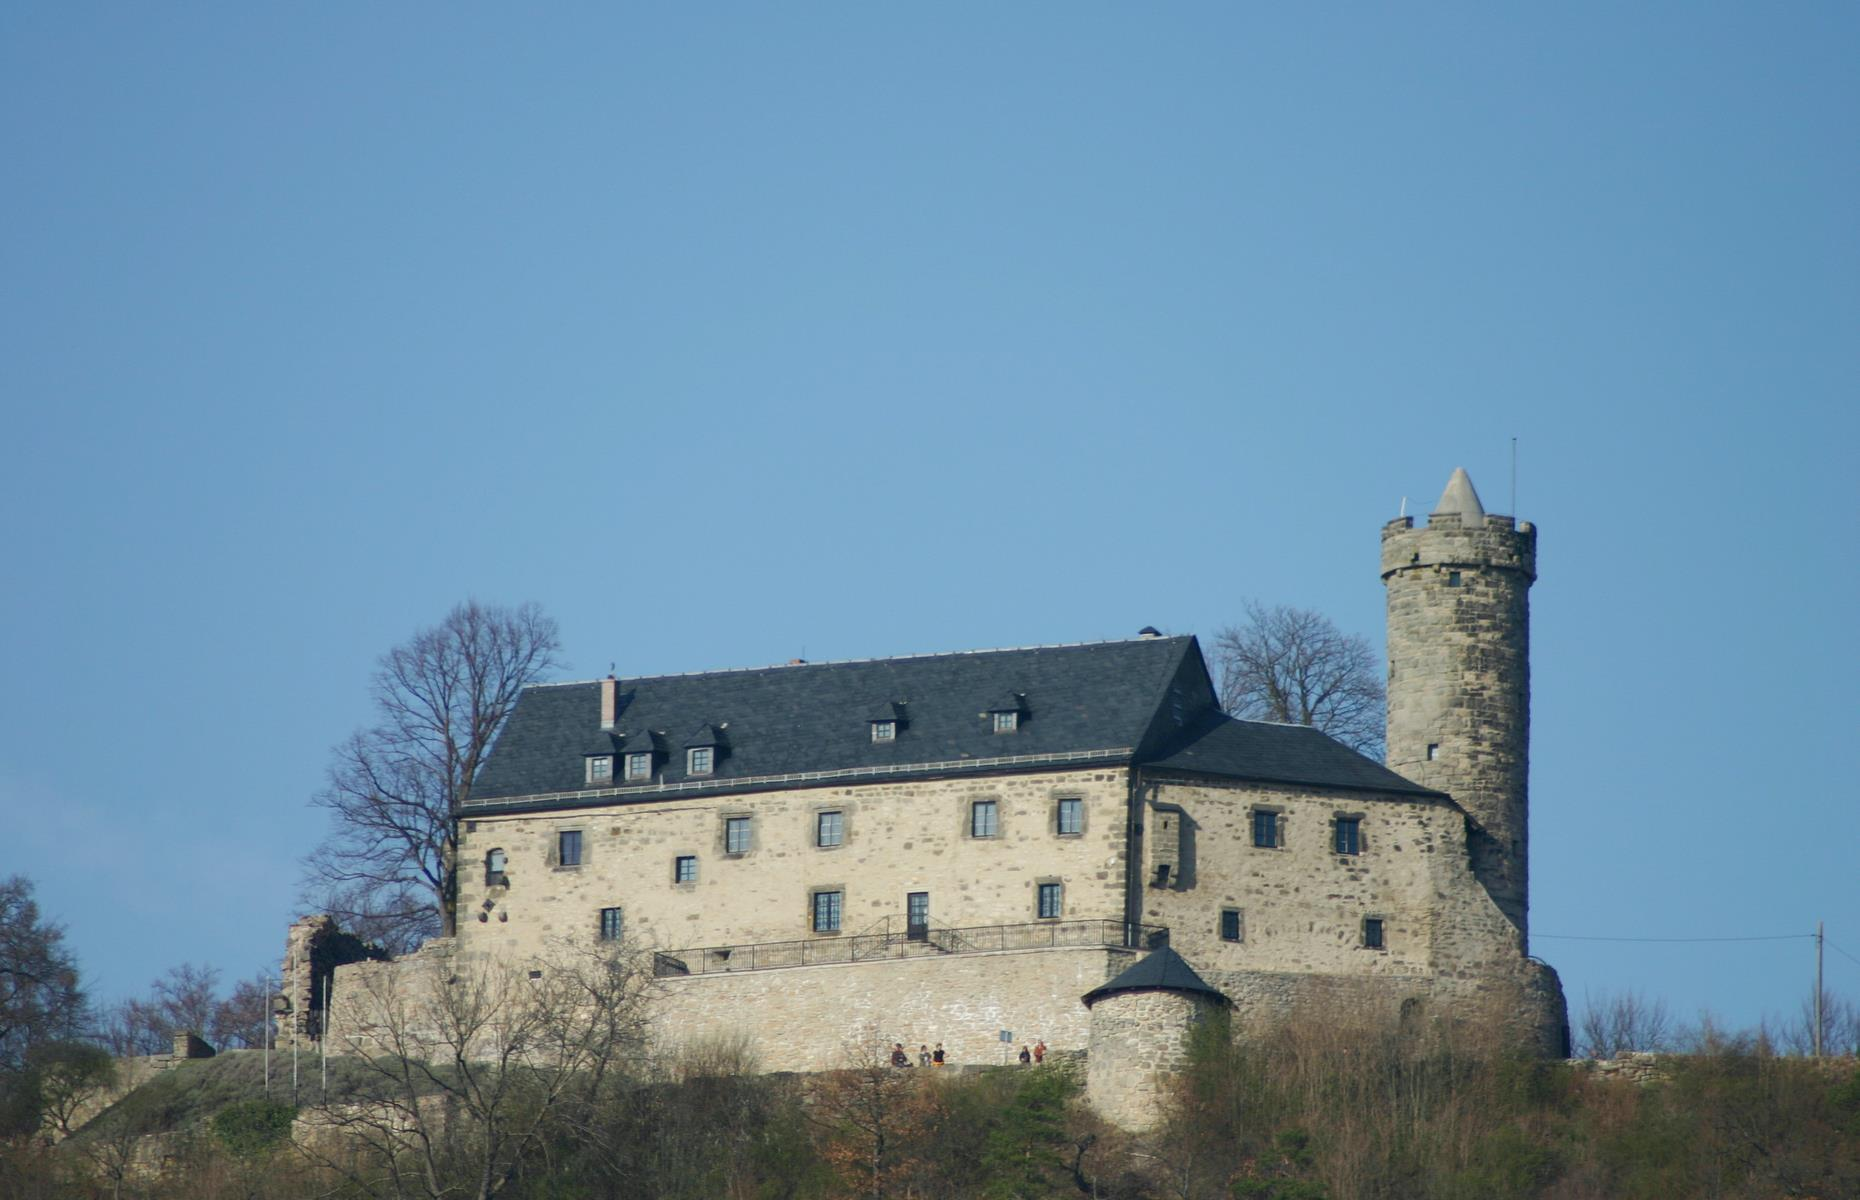 Slide 34 of 41: Surrounded by the thick tangle of Thuringia forest, the little spa town of Bad Blankenburg woos visitors with its grand feudal castle Greifenstein, home to the Counts of Schwarzburg-Blankenburg in the 13th and 14th century. The town, also known as Lavender City in reference to a former lavender farm in the area, is famous for being the birthplace of kindergarten. That's right, education pioneer Friedrich Froebel opened the very first kindergarten here in 1840 and now his namesake museum is housed in the very same spot.